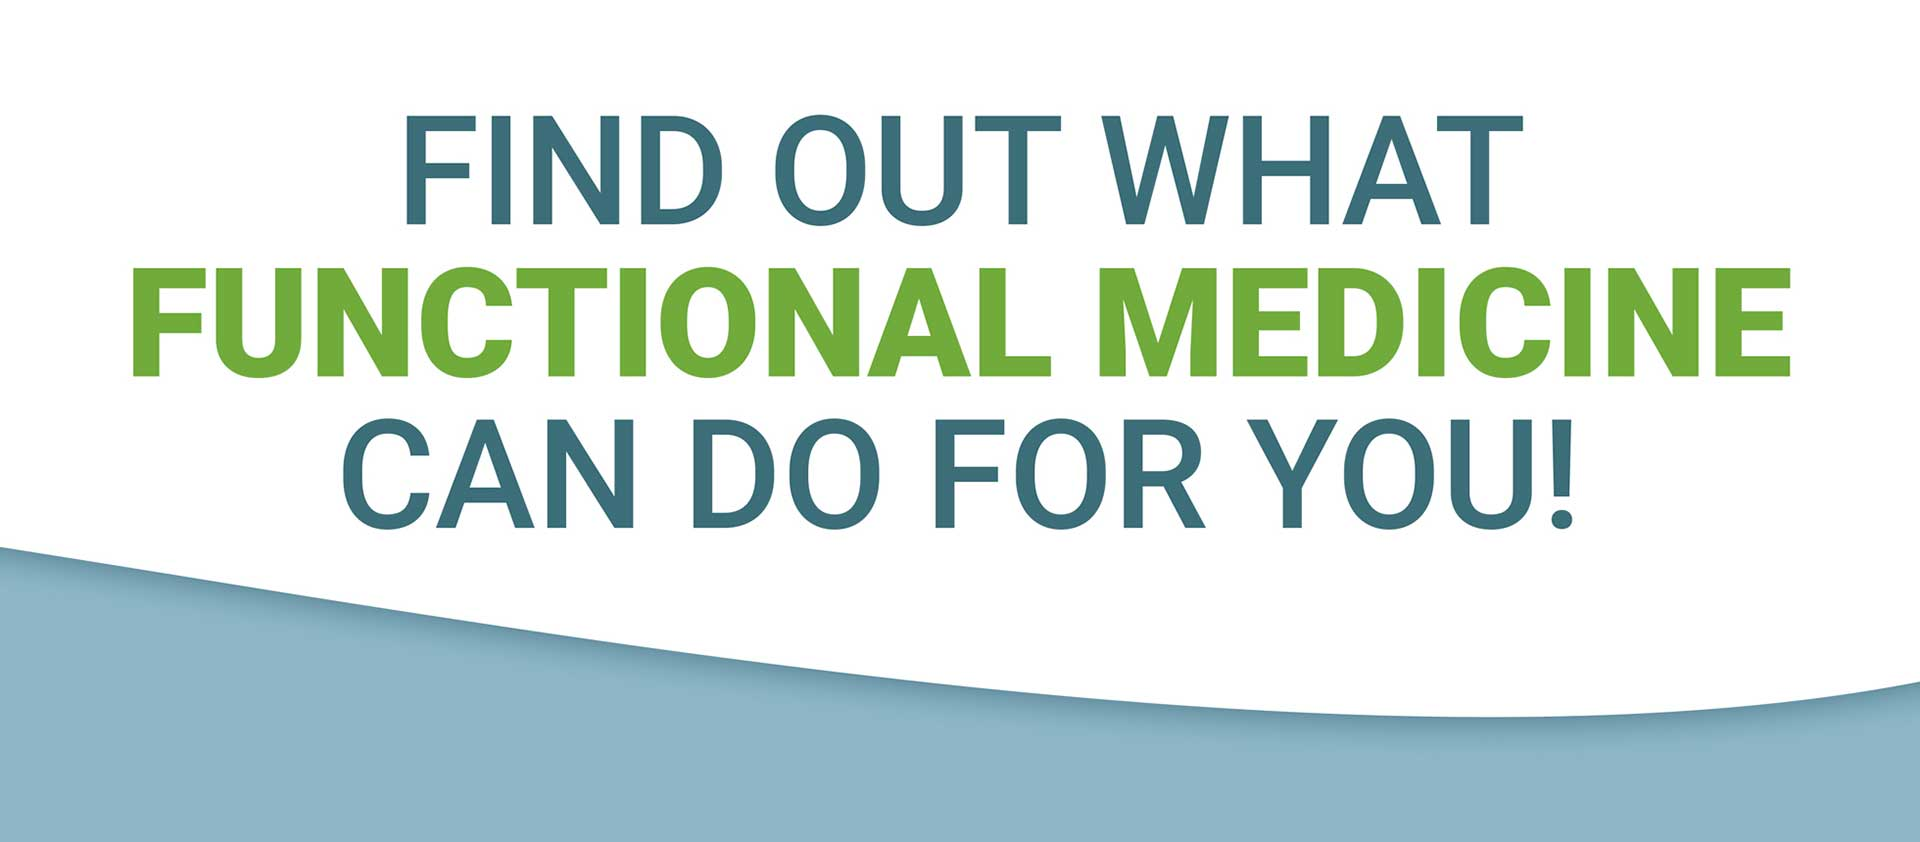 Find Out What Functional Medicine Can Do For You!